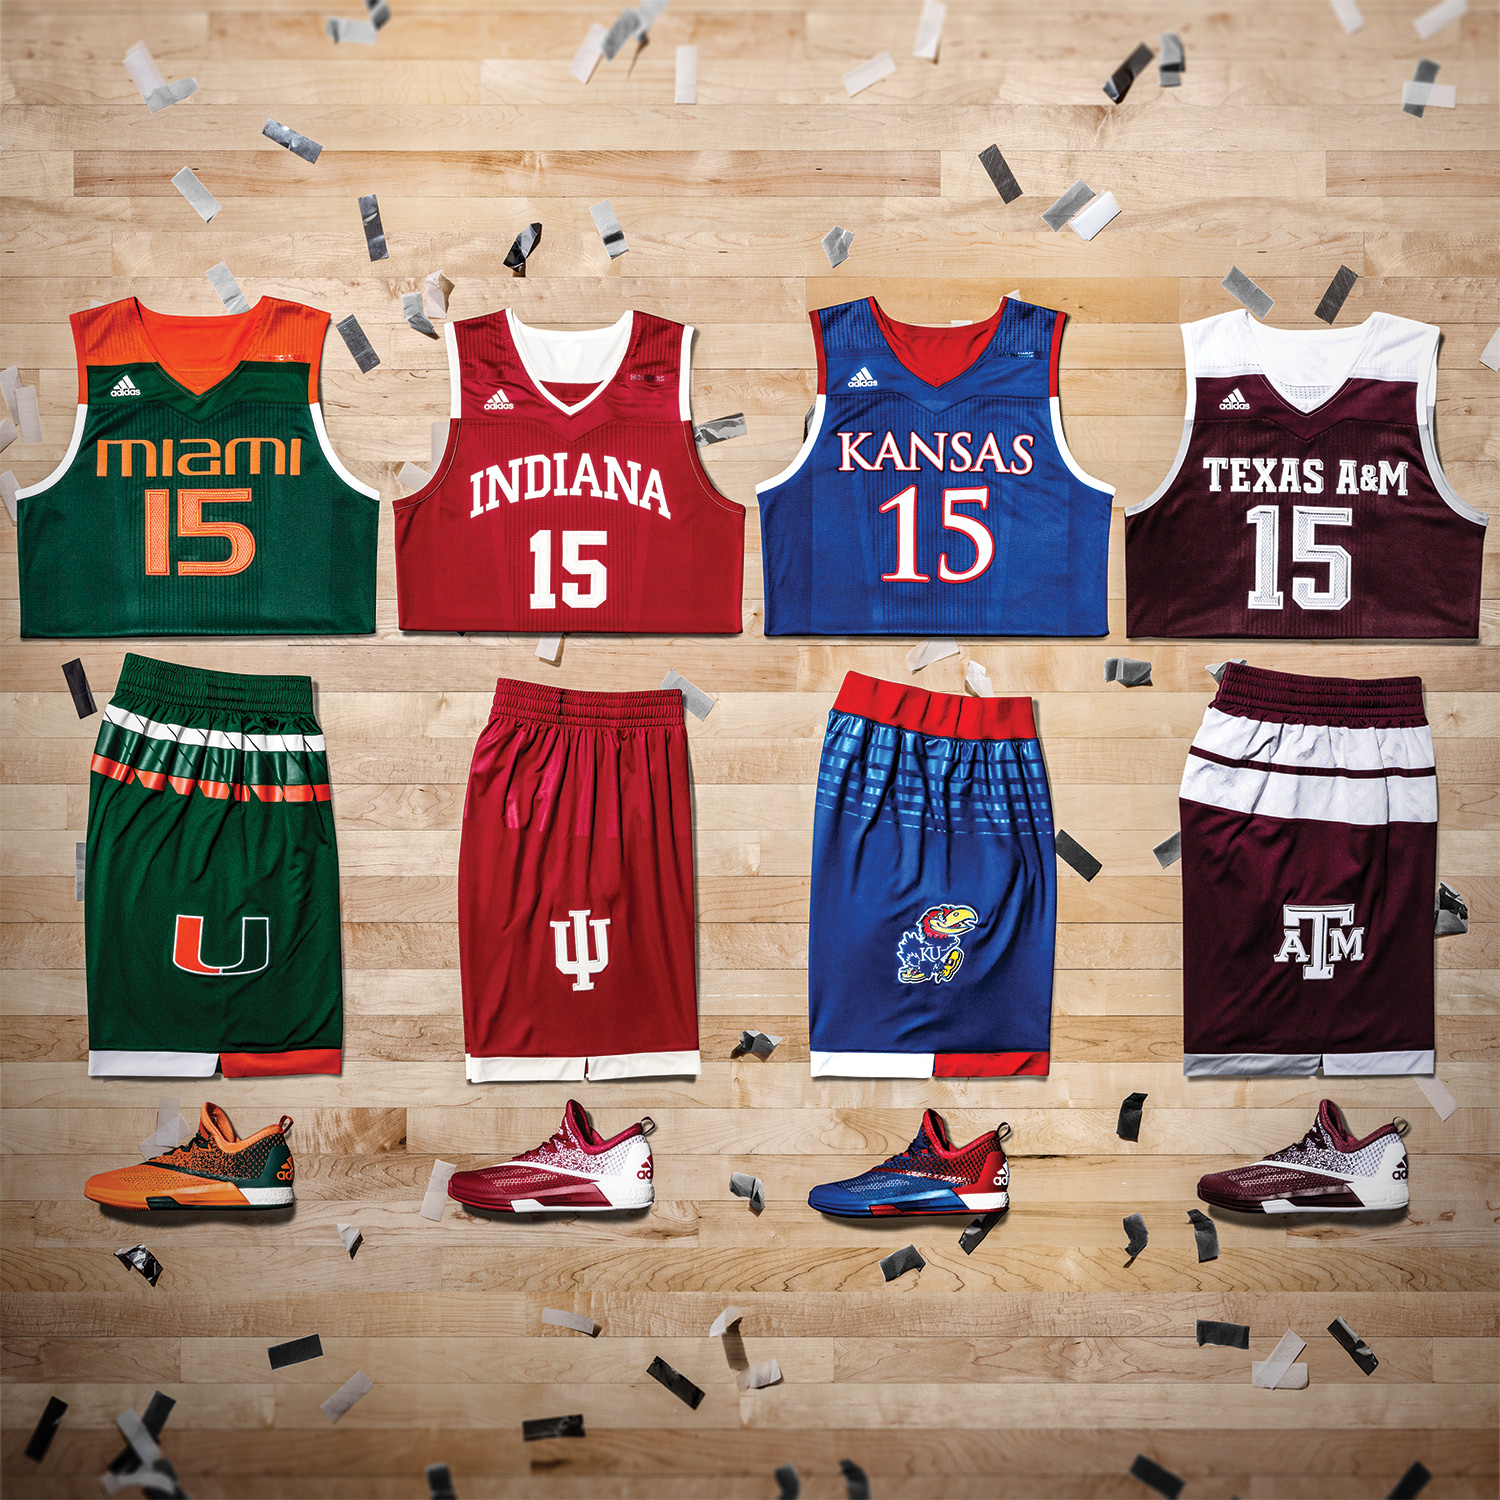 adidas School Pride Basketball Uniforms for 2016 March Madness